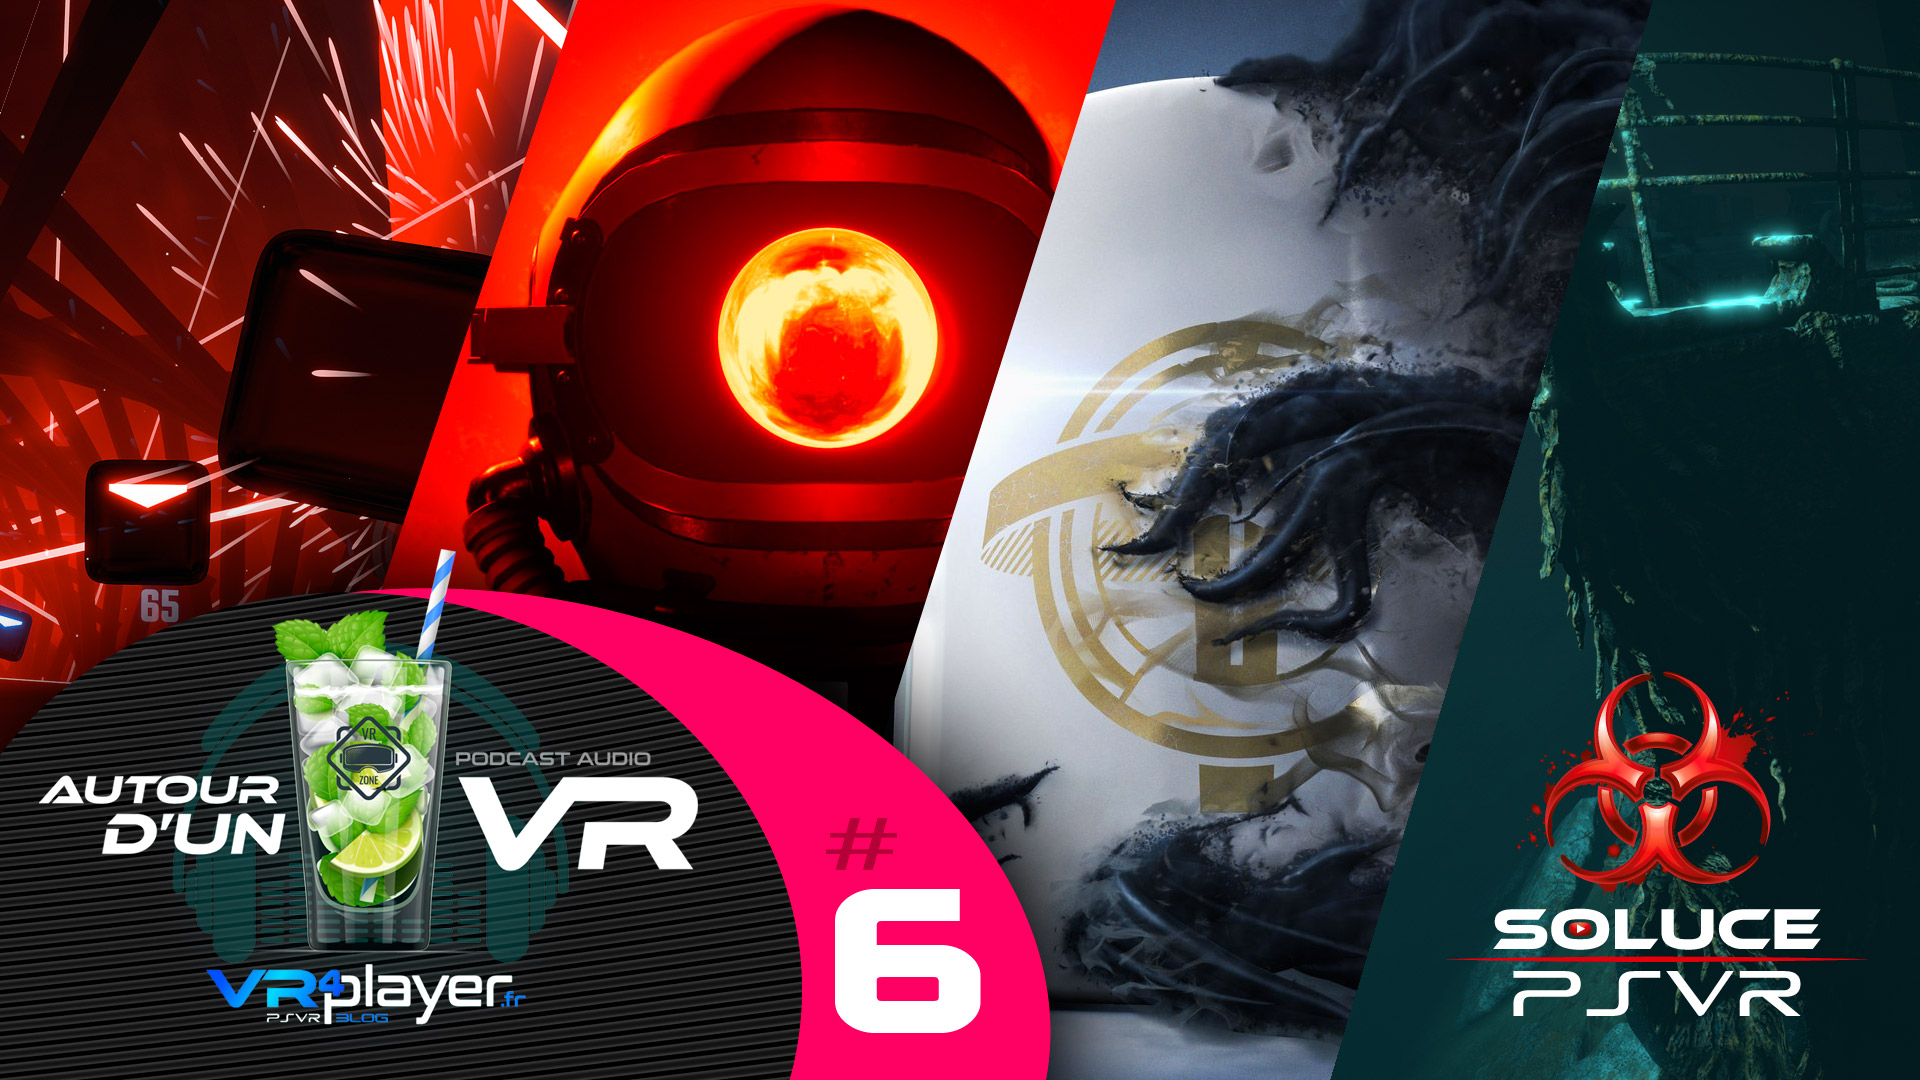 Podcast VR4Player Autour d'un VR #6 PlayStation VR